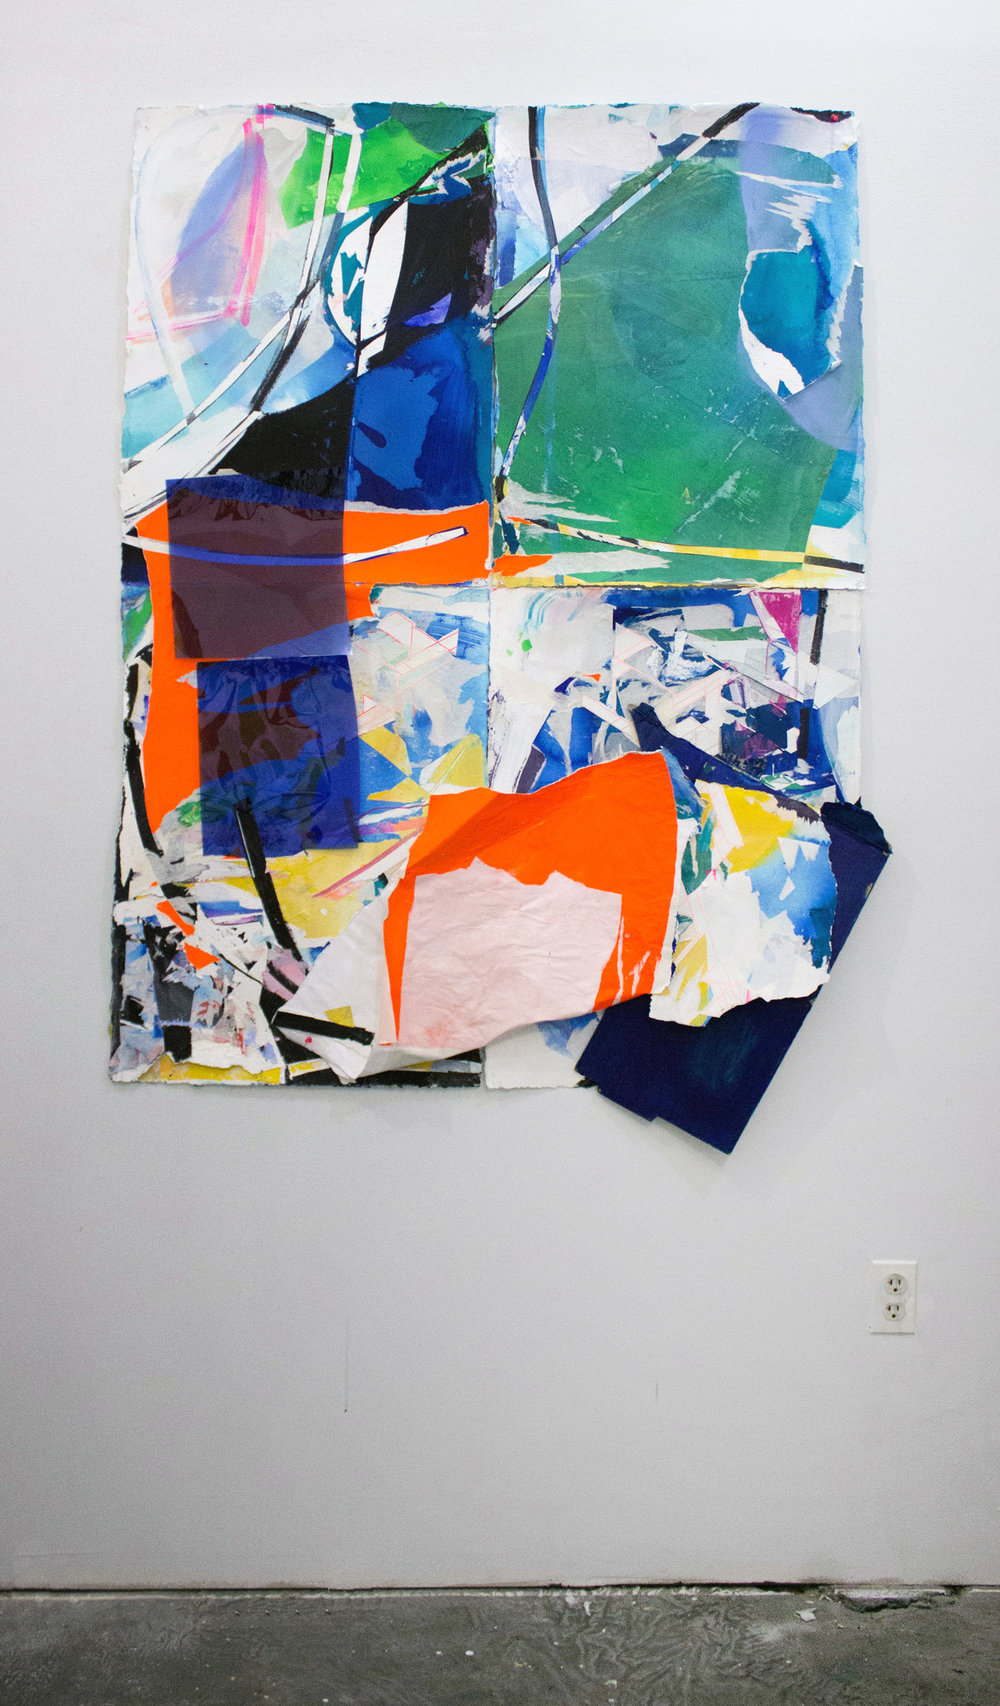 """Shifting Context ,  61""""x49"""", Cardboard, Acrylic, Spray Paint, Plastic, Collage, 2017 [Unavailable - Private Collection]"""